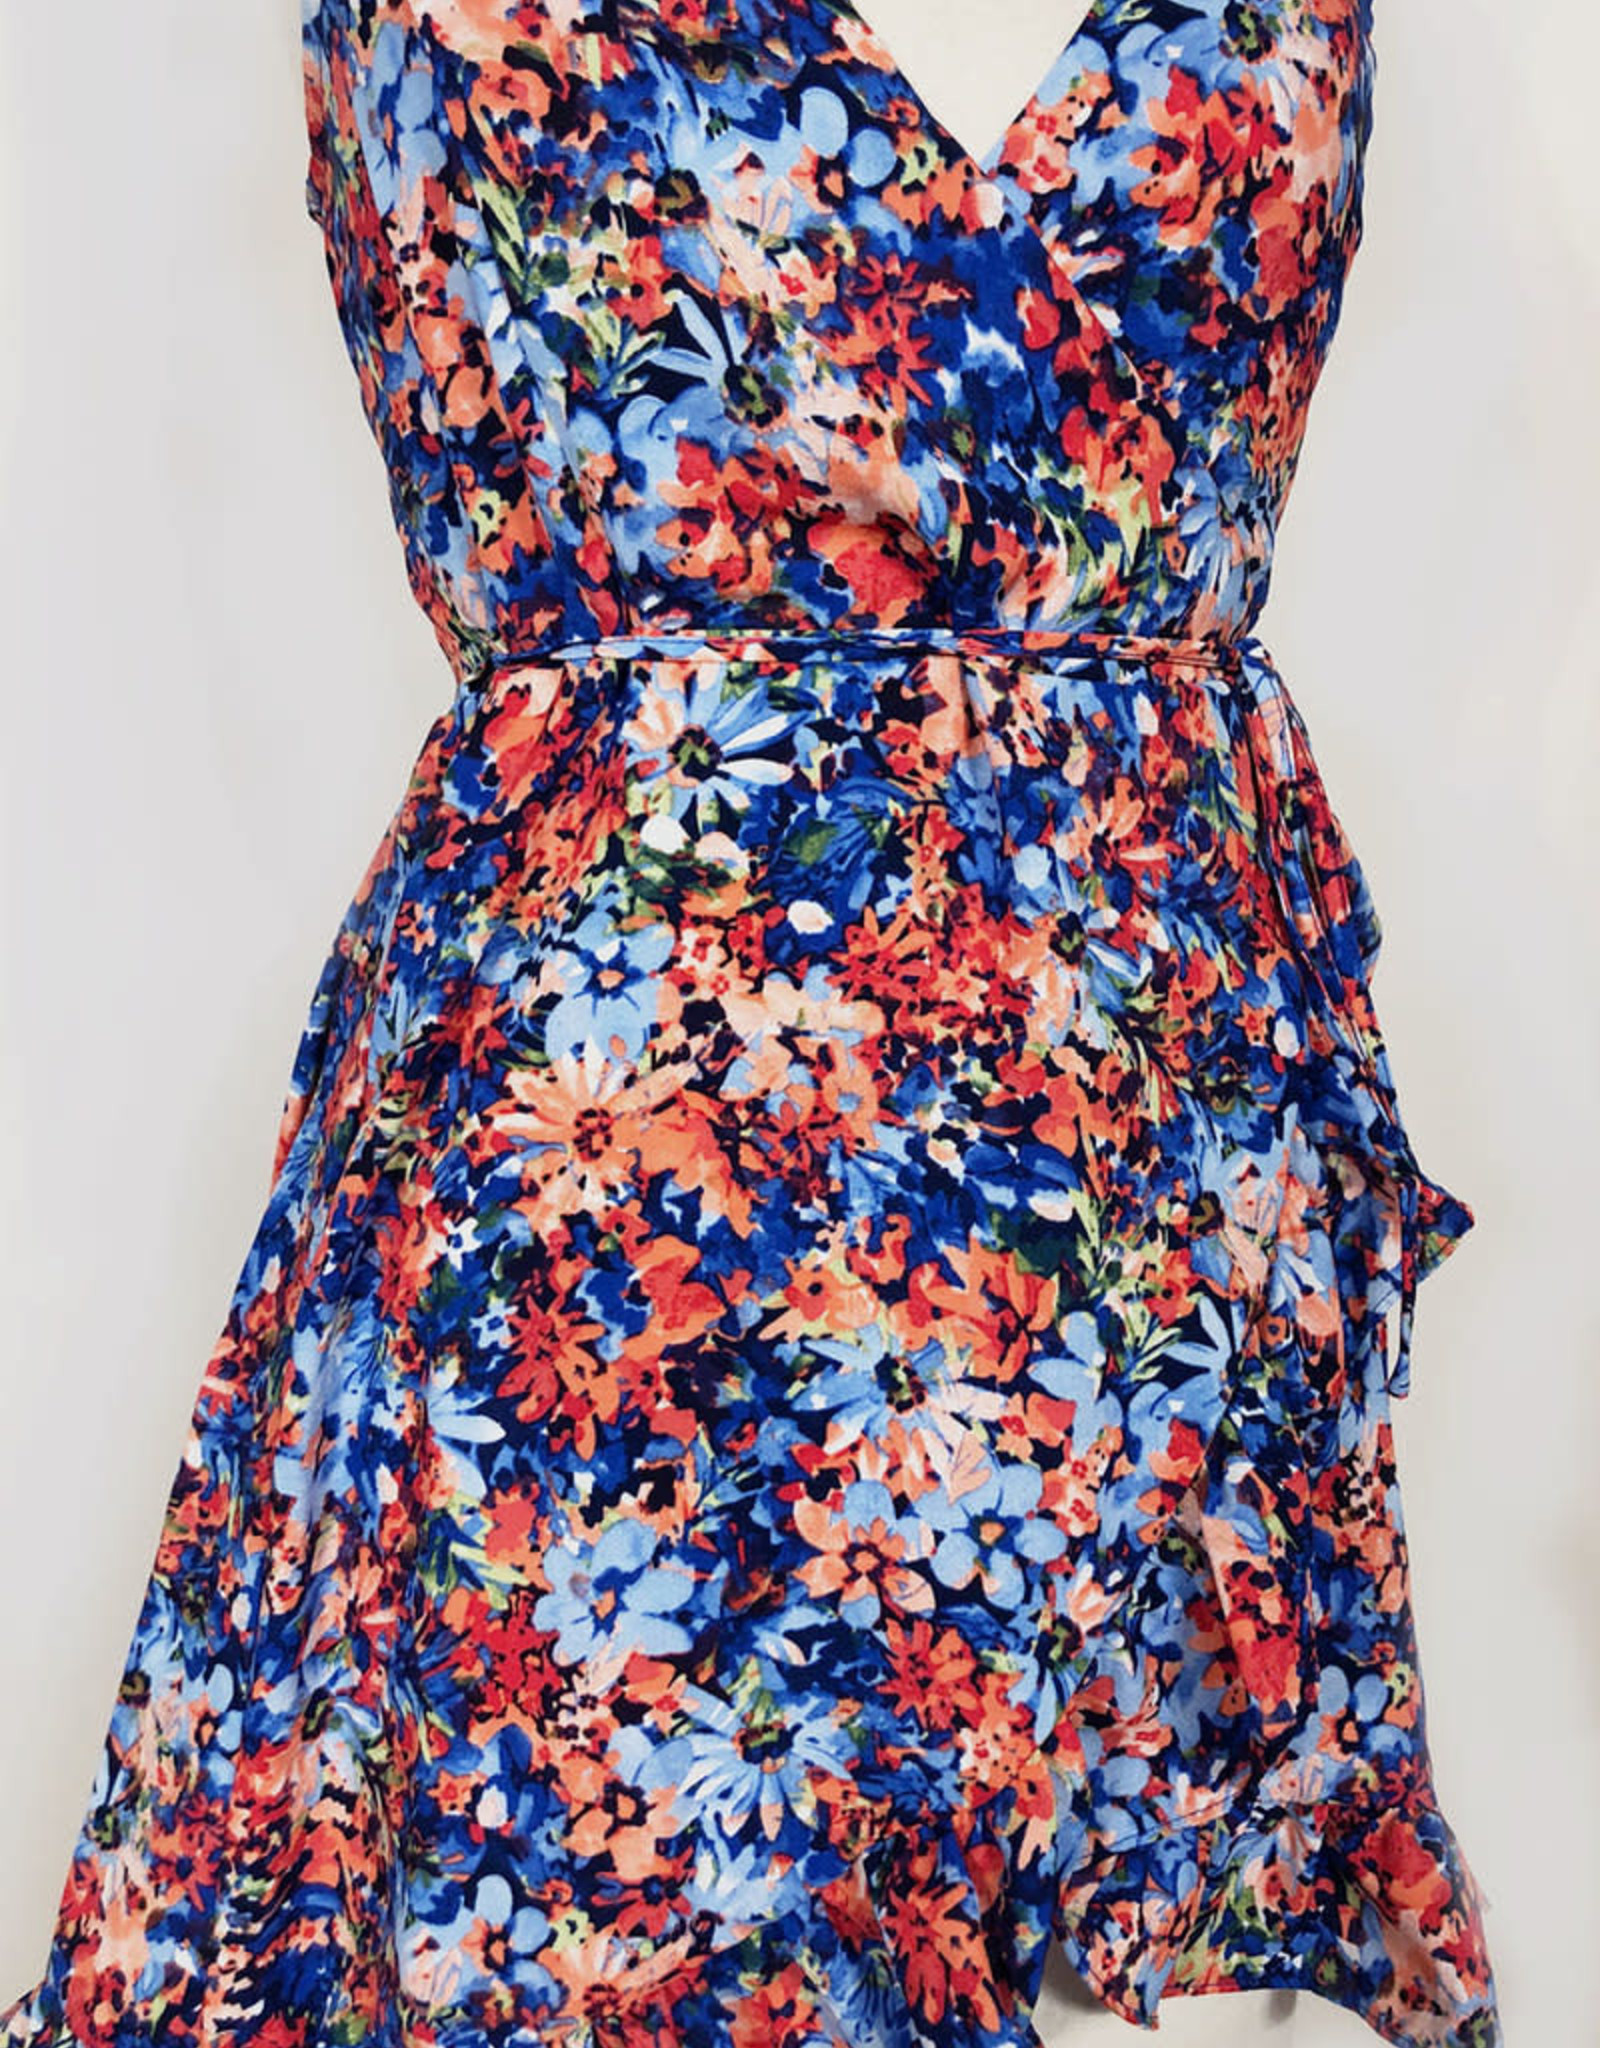 LeBLANC finds IN BLOOM Floral Dress